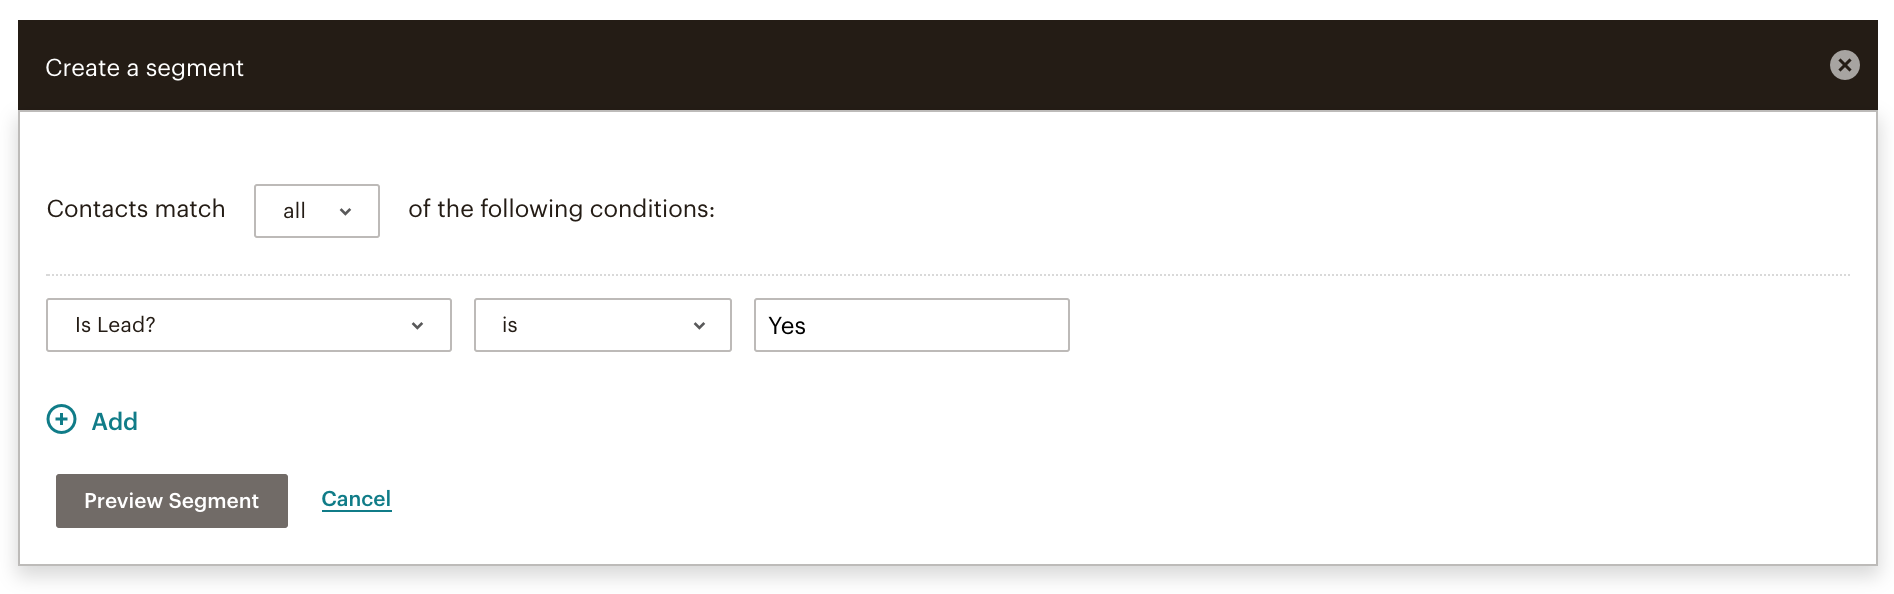 create a segment in mailchimp